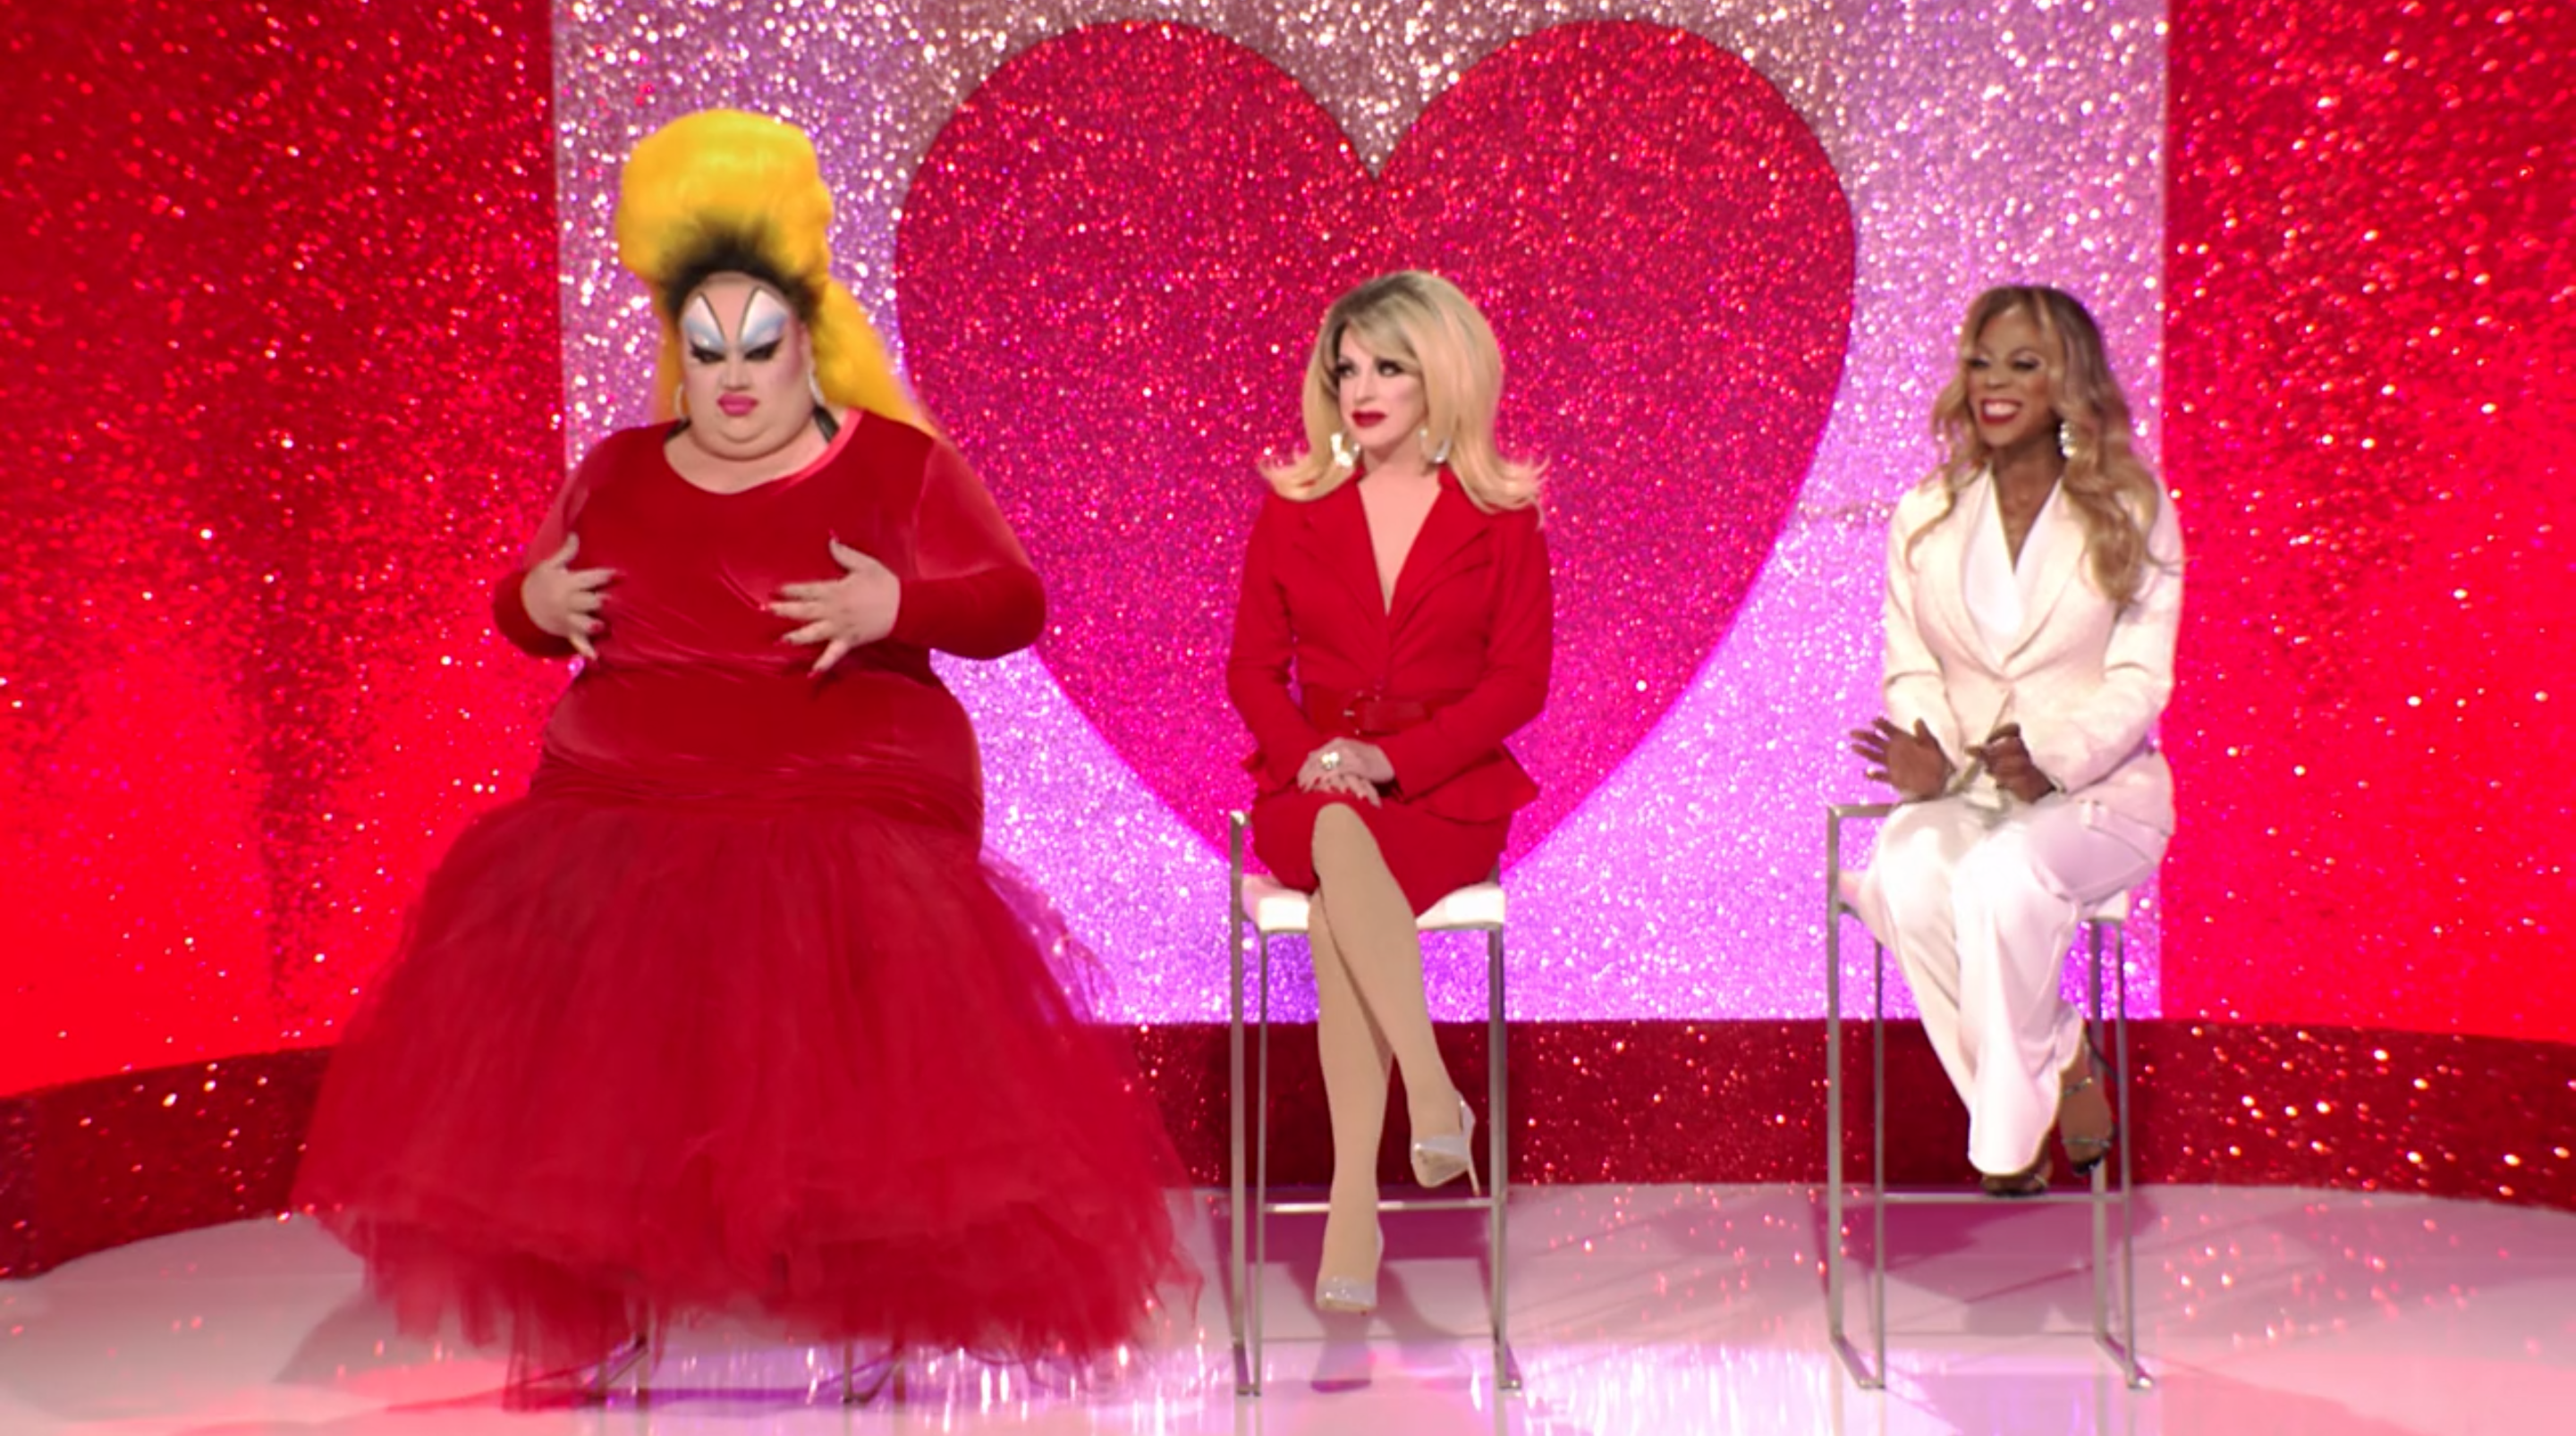 Eureka, Pandora and Ra'Jah in the Snatch Game of Love.